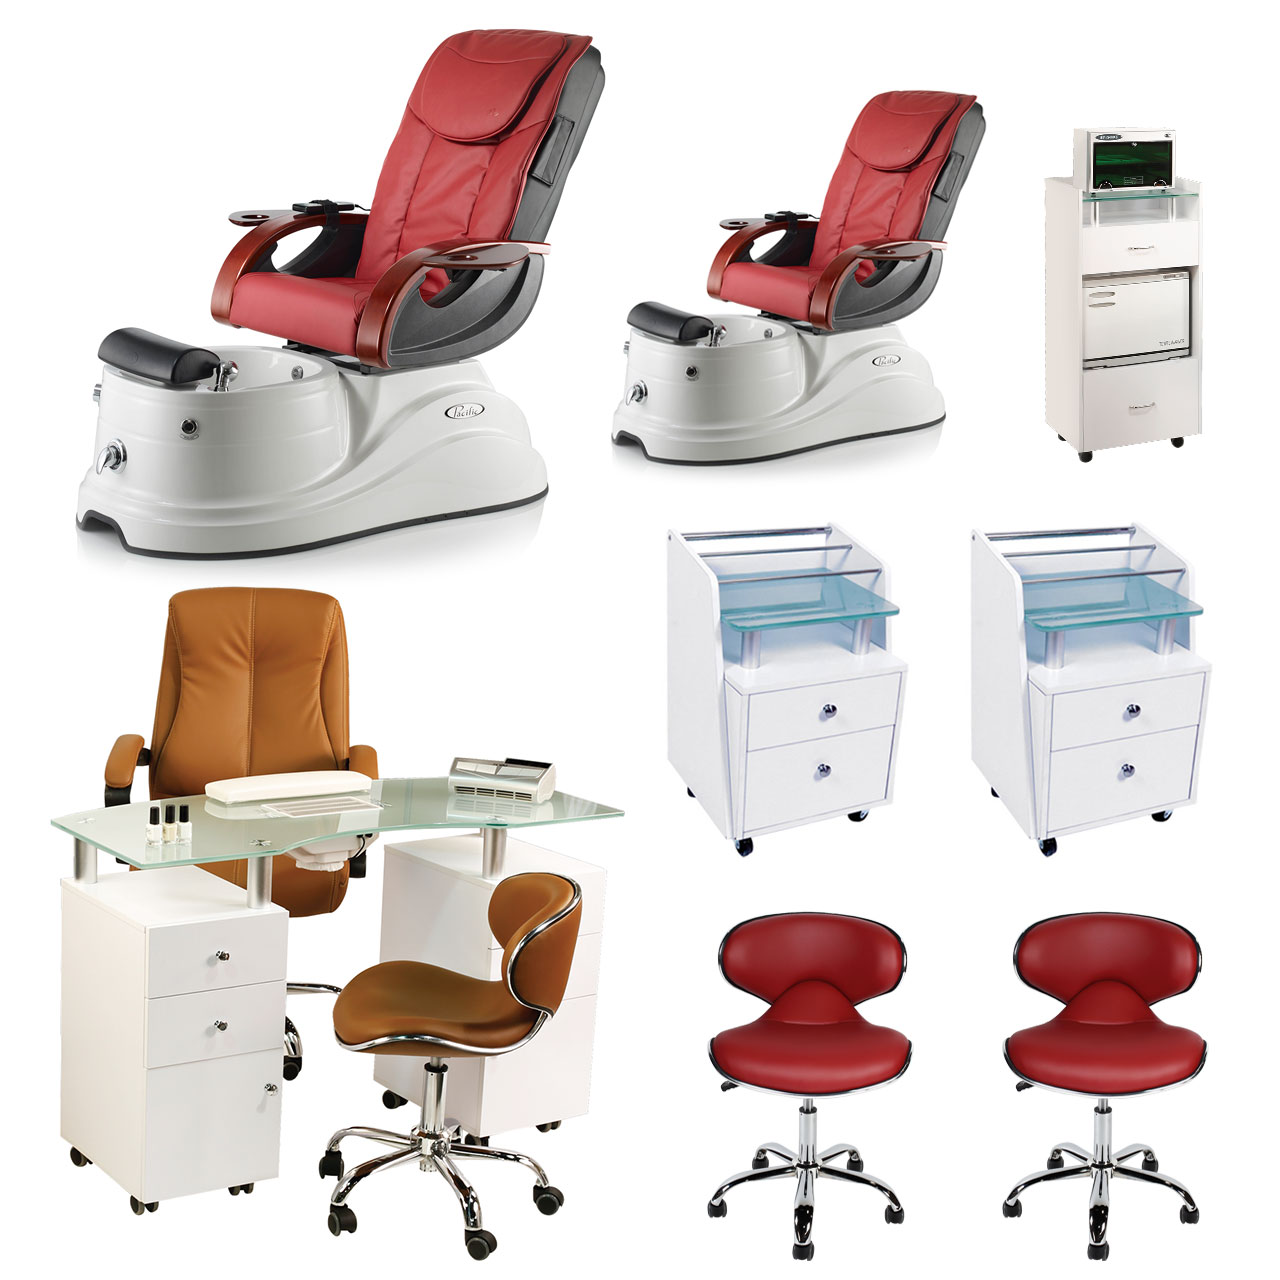 Red 2 Pacific AX Luxury Nail Salon Furniture Package with Manicure Station  main product image